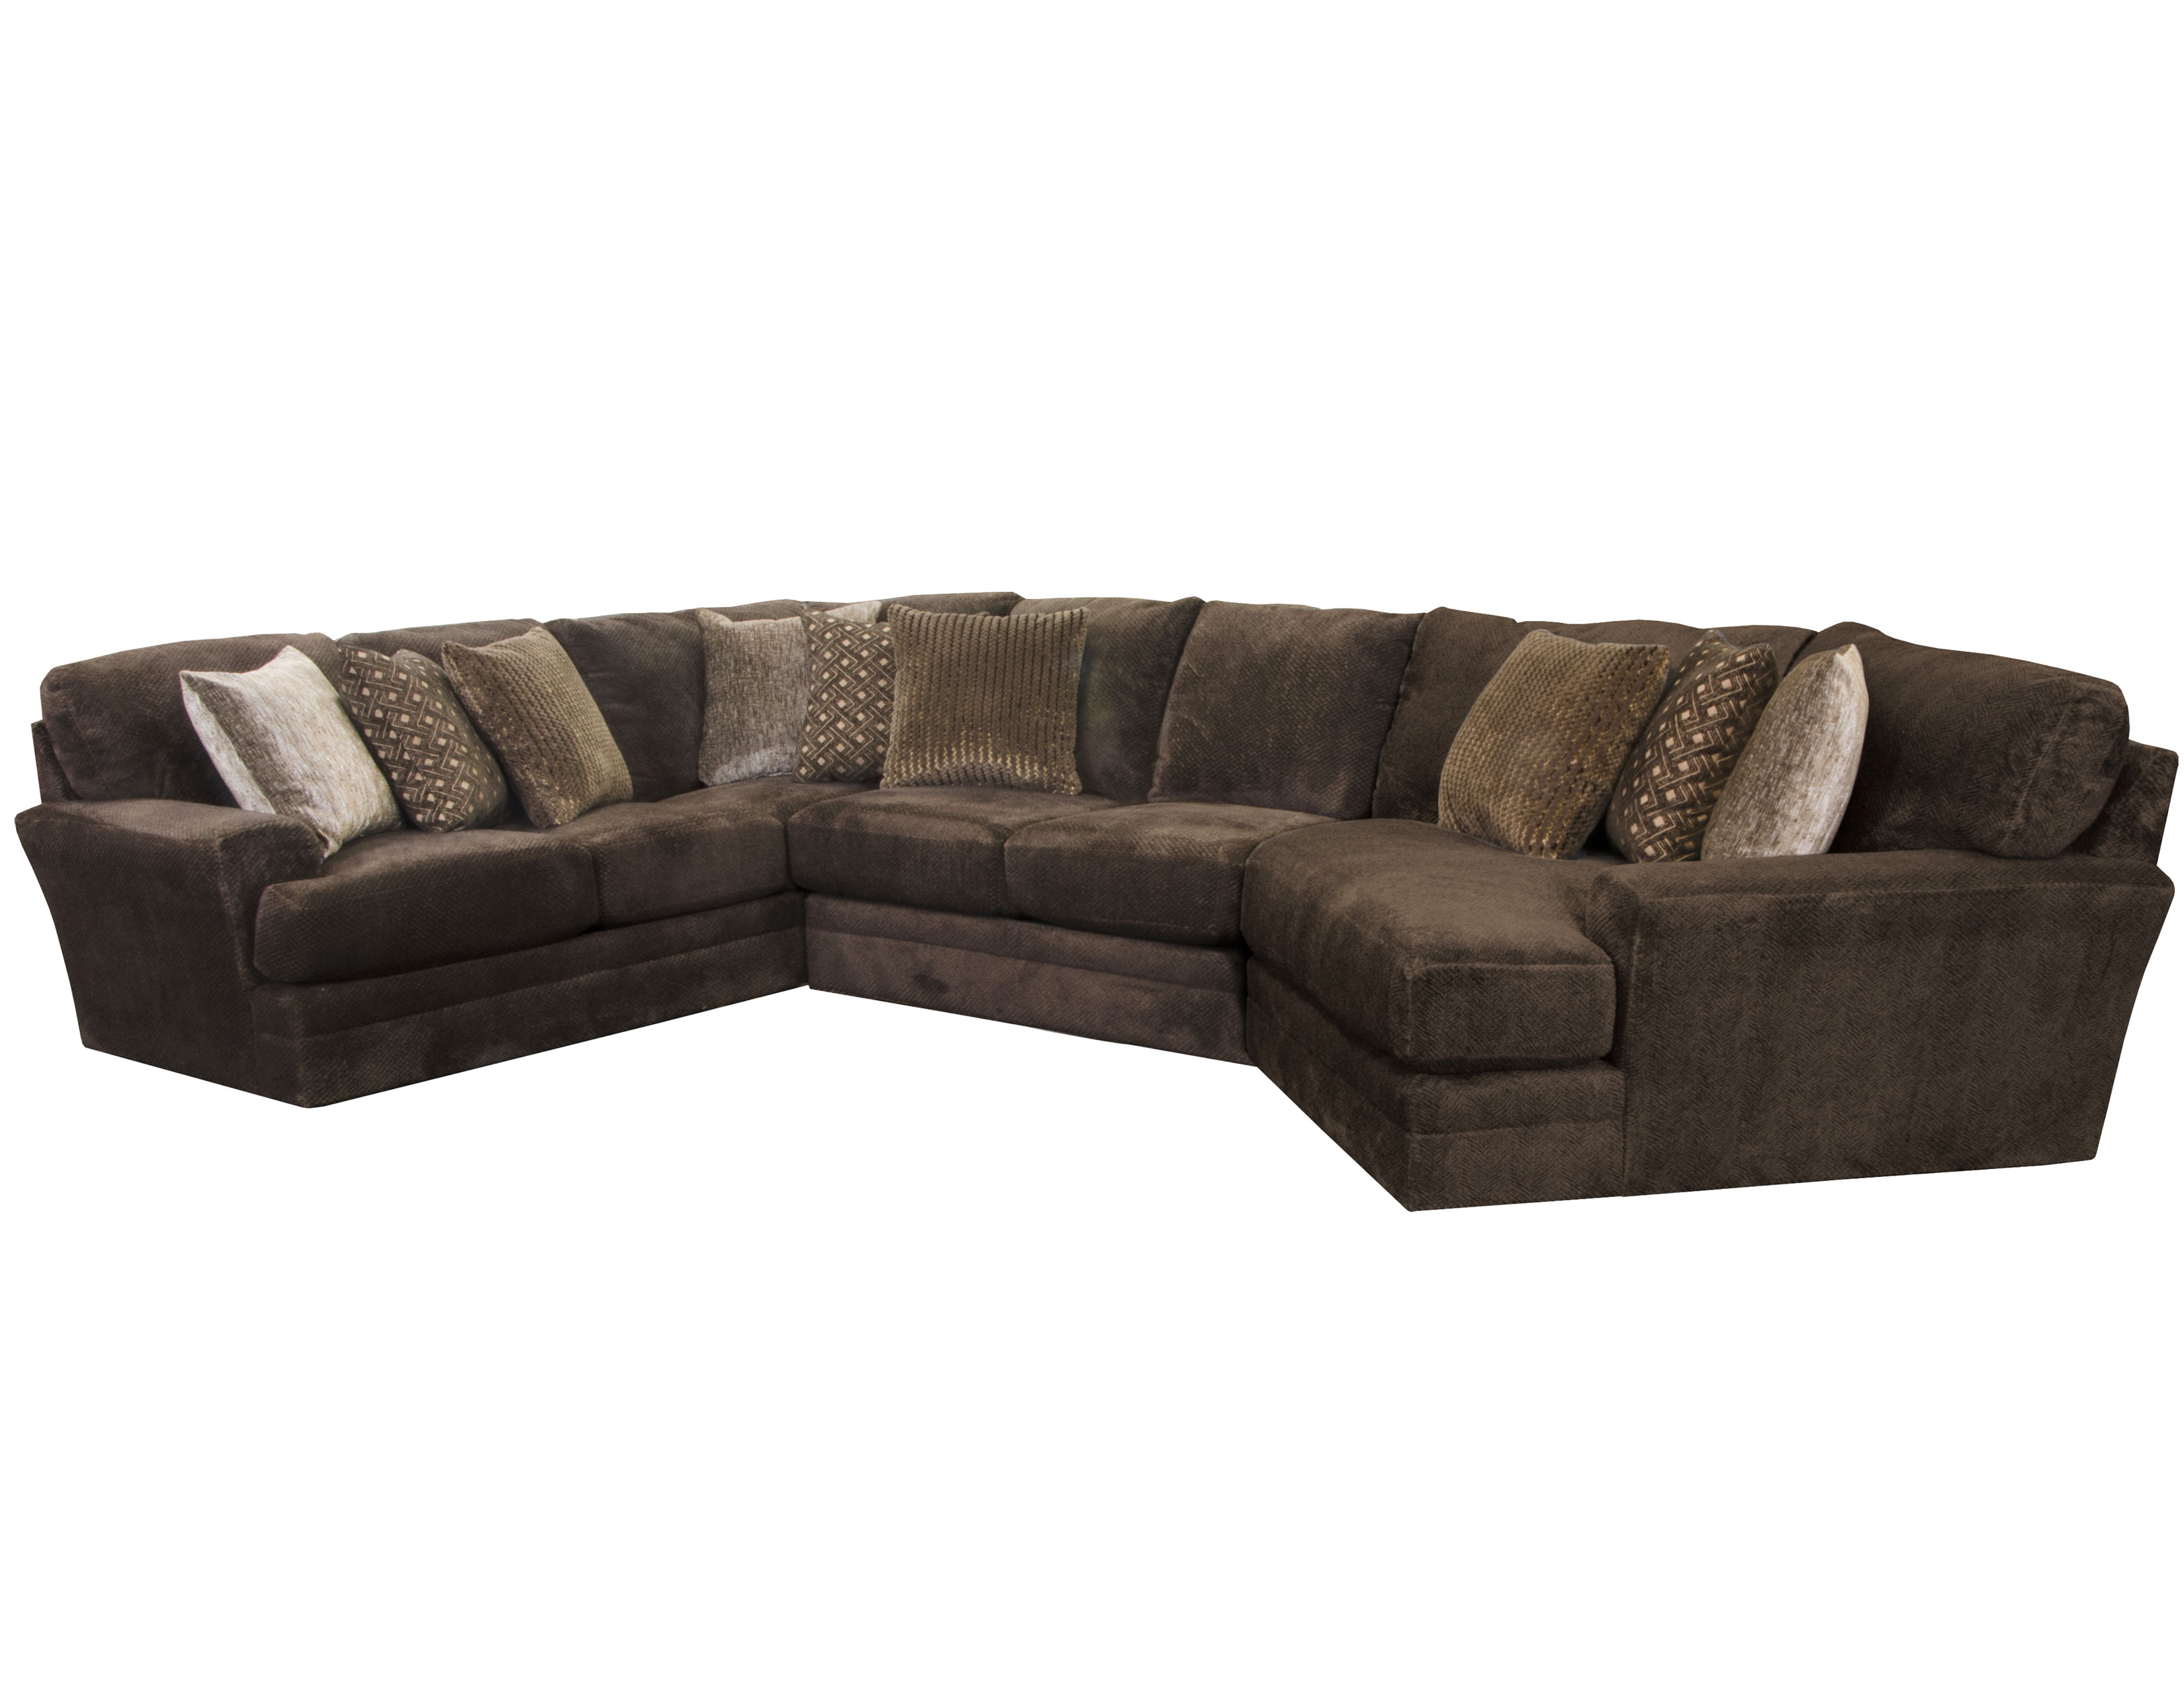 Pleasant Mammoth Sectional In Chocolate 15 Pieces Sofas And Sectionals Theyellowbook Wood Chair Design Ideas Theyellowbookinfo